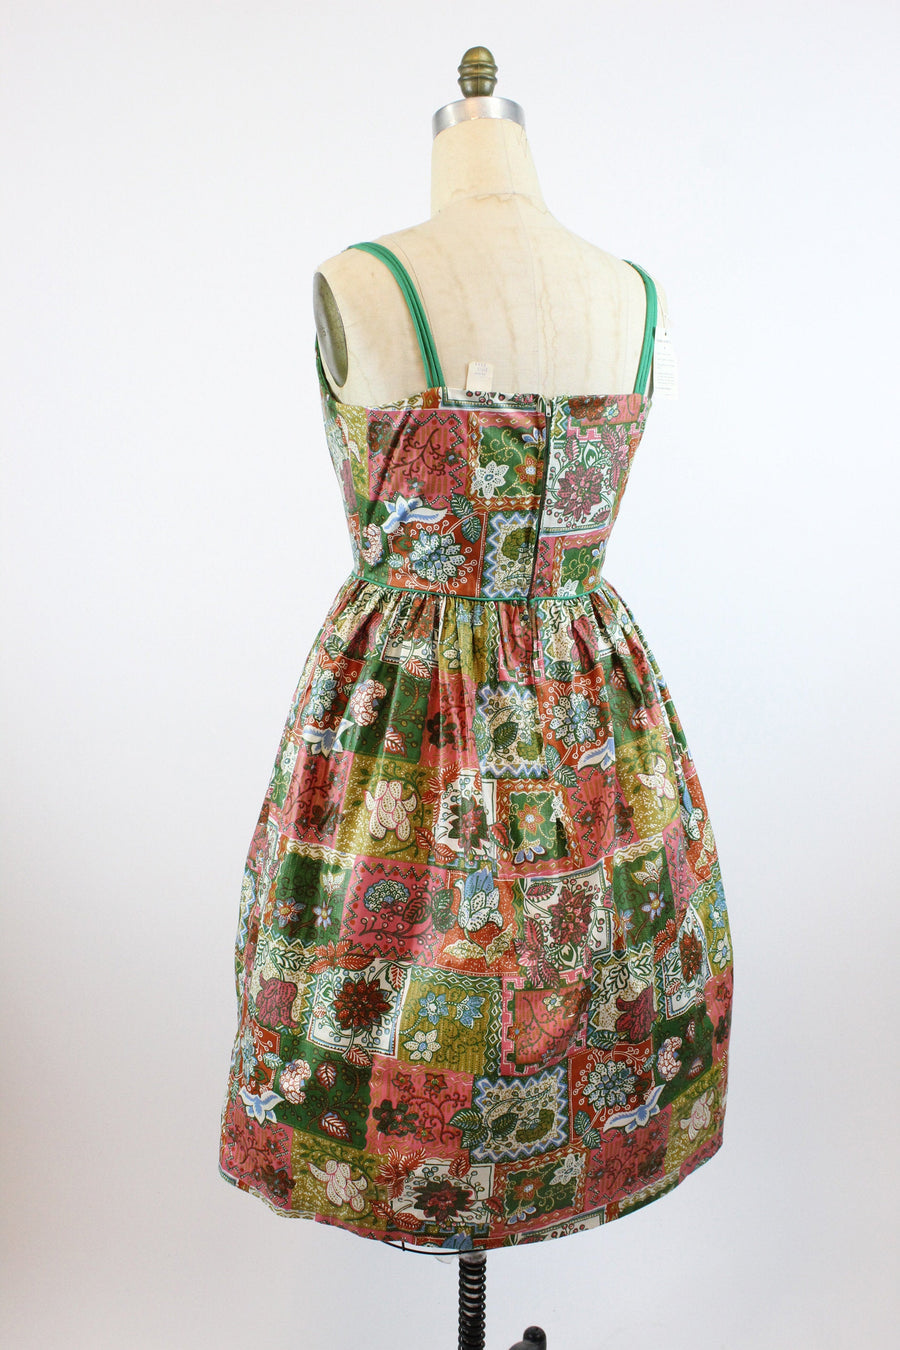 1950s deadstock cotton dress large | vintage batik print cotton dress new